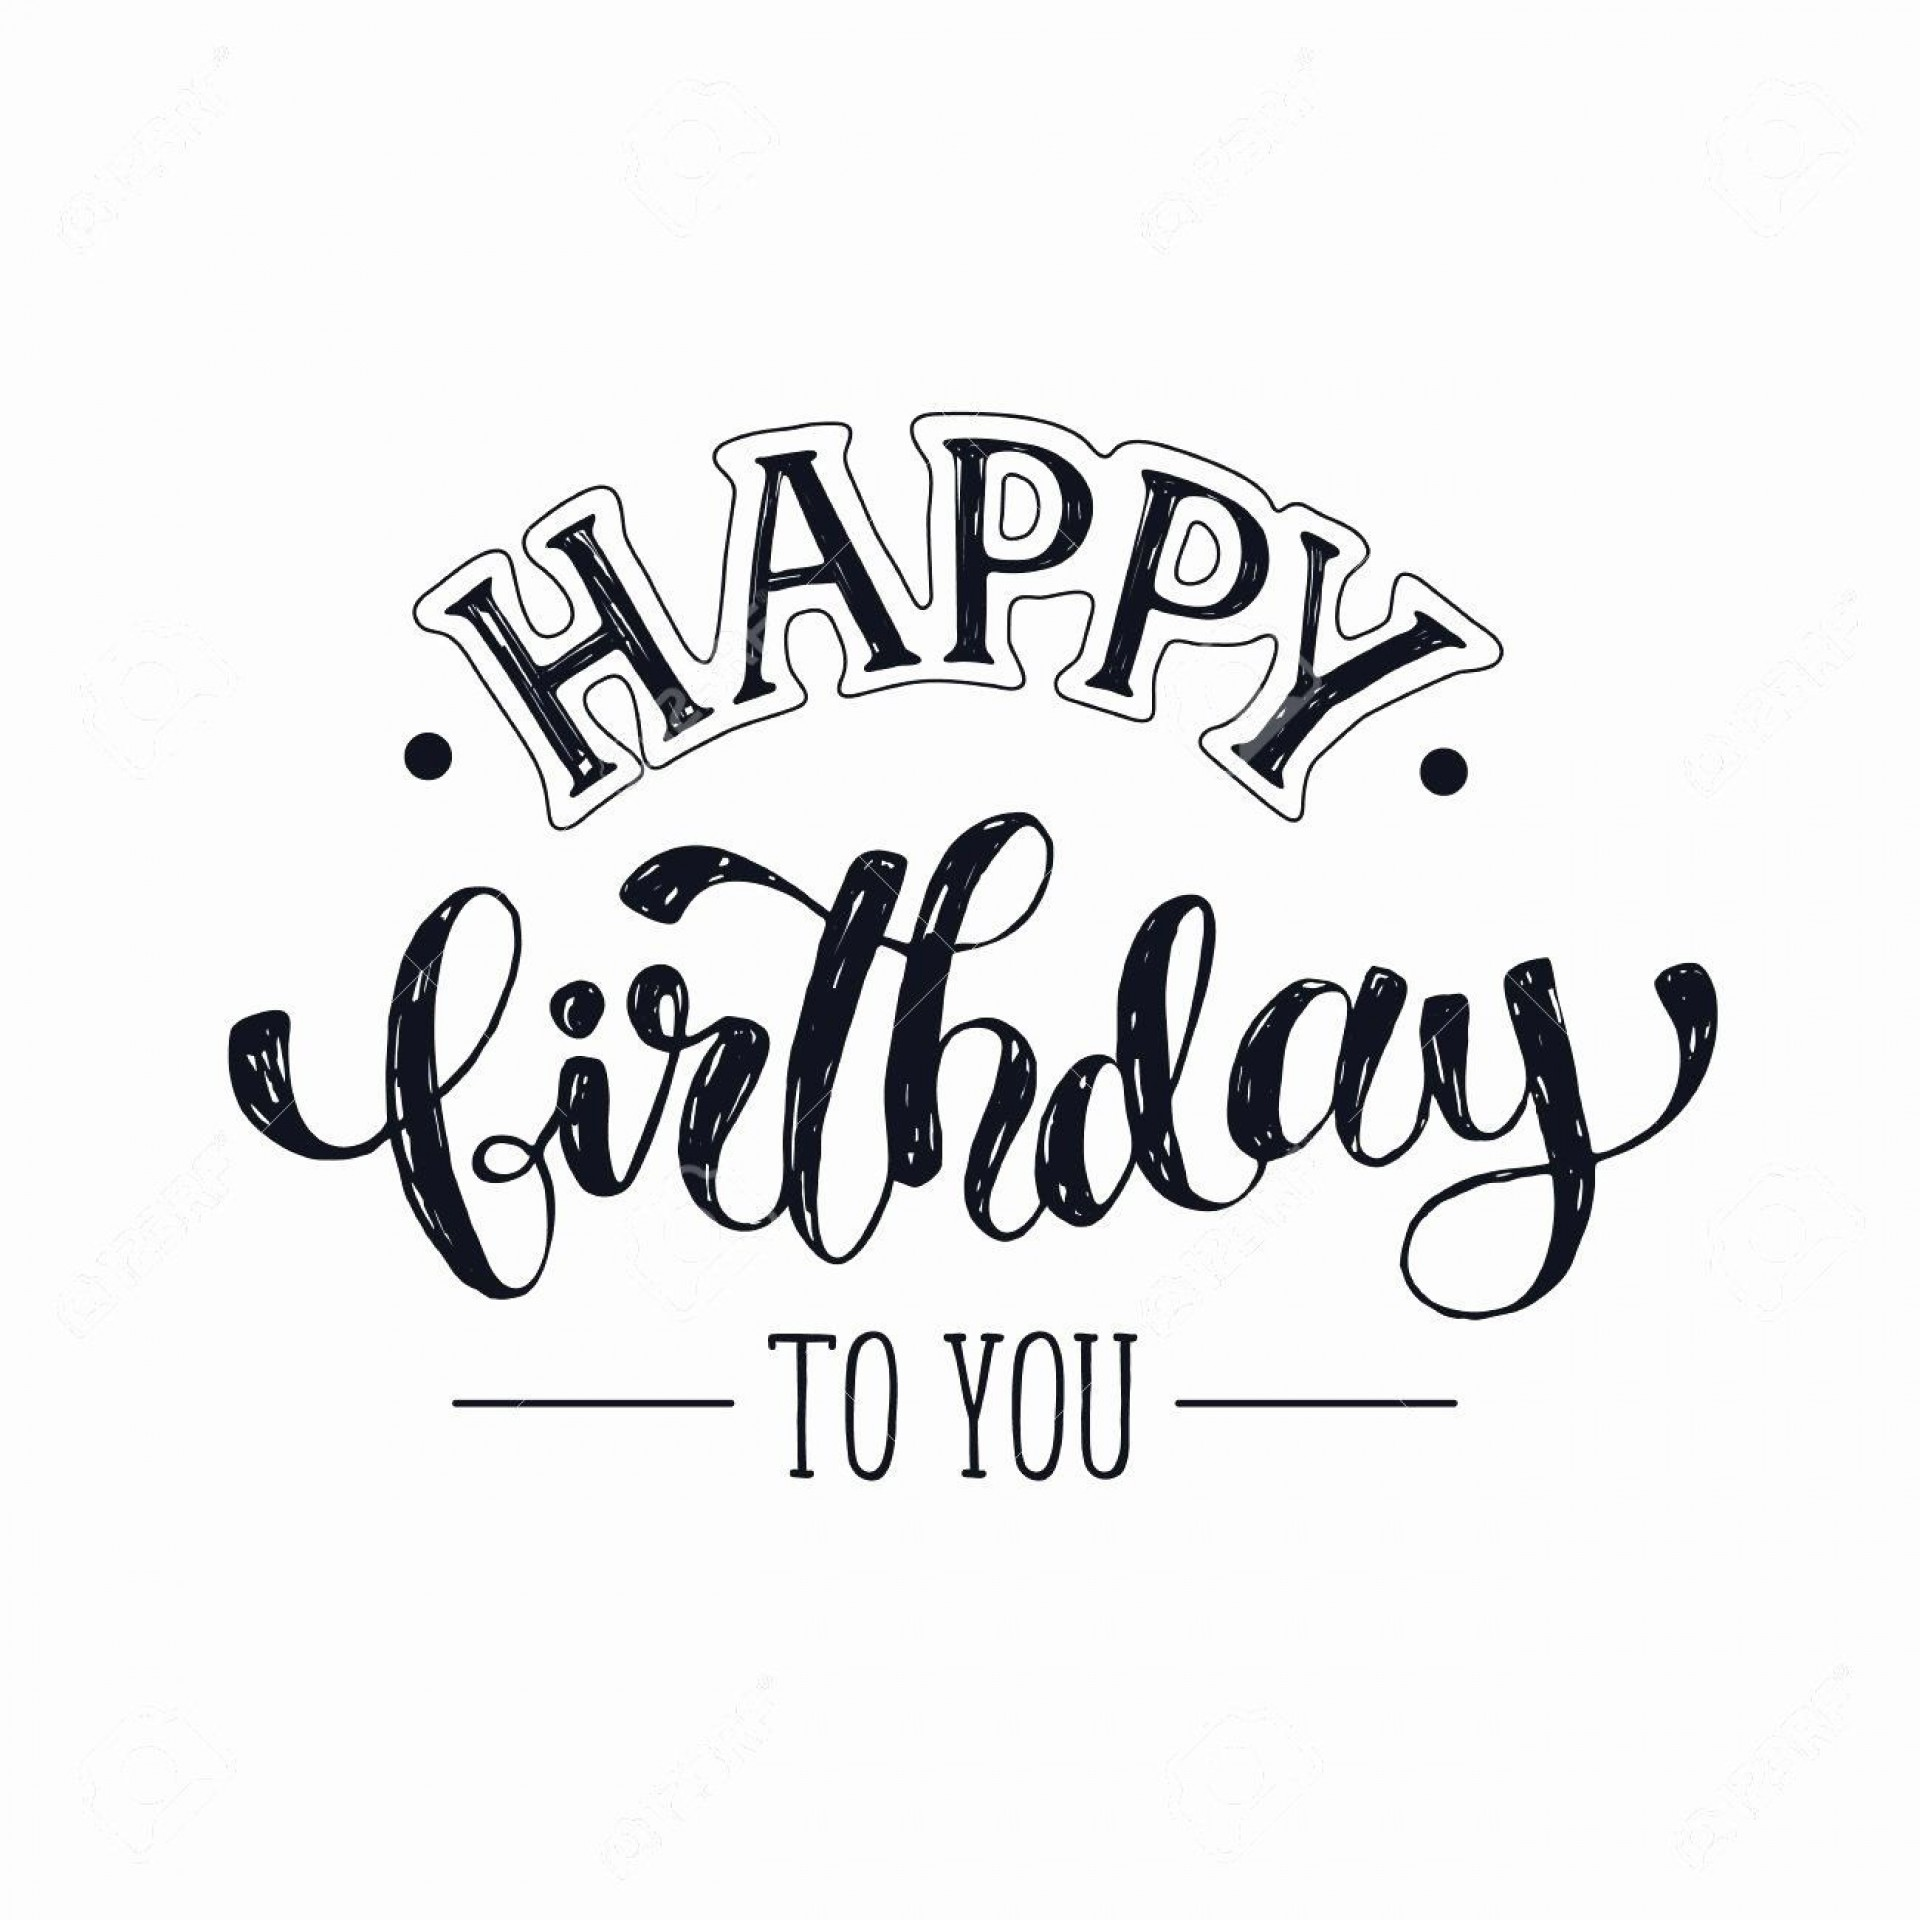 003 Incredible Happy Birthday Card Template For Word Example 1920